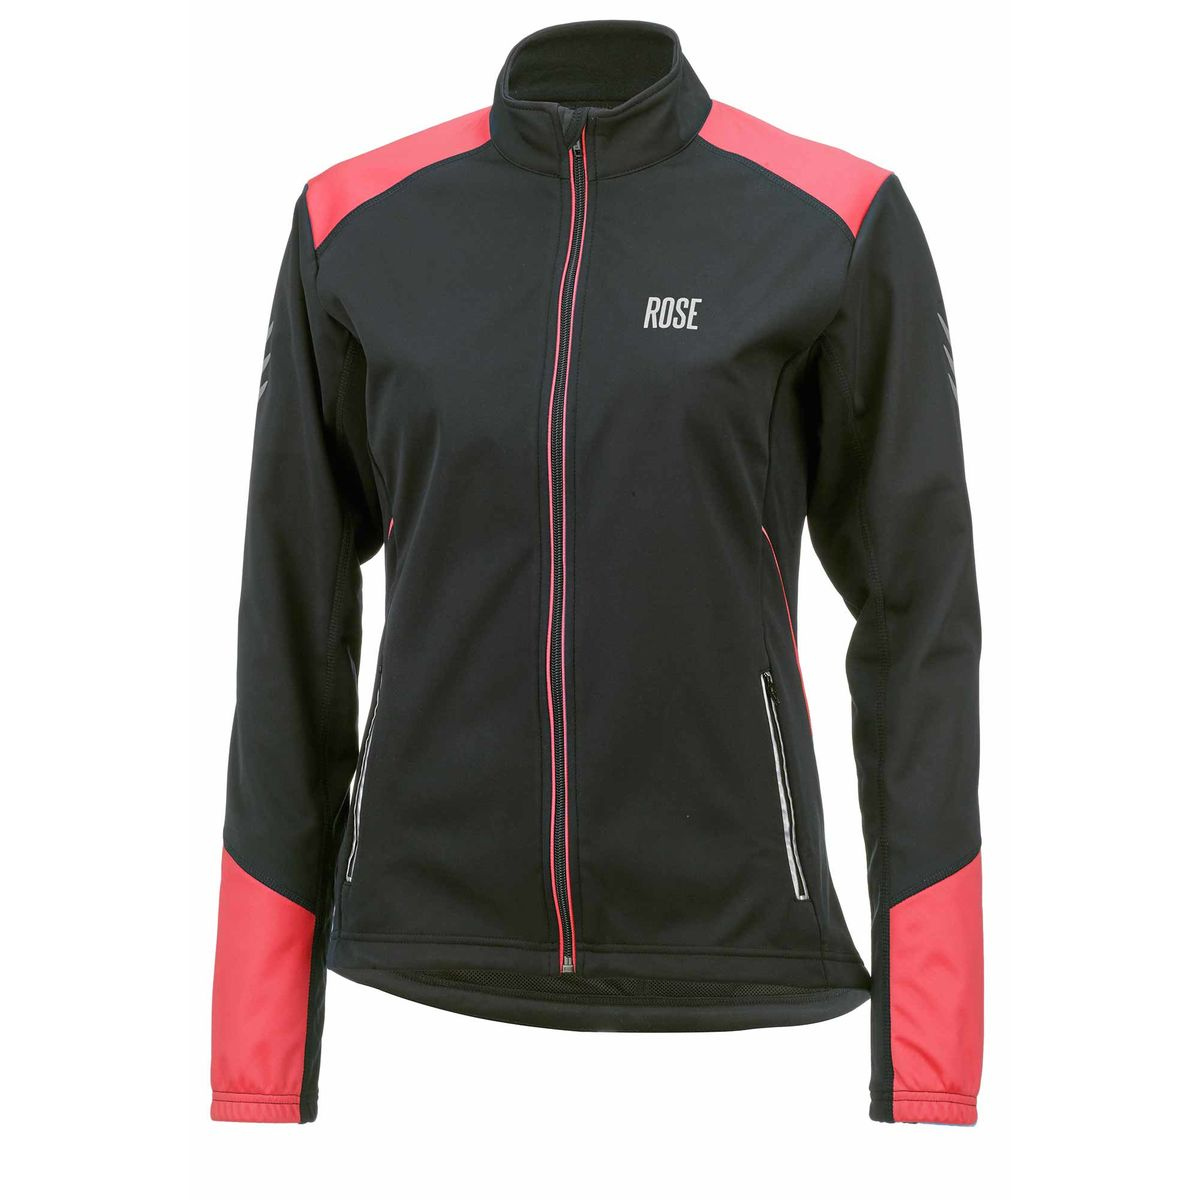 WIND FIBRE SOFTSHELL women's winter jacket